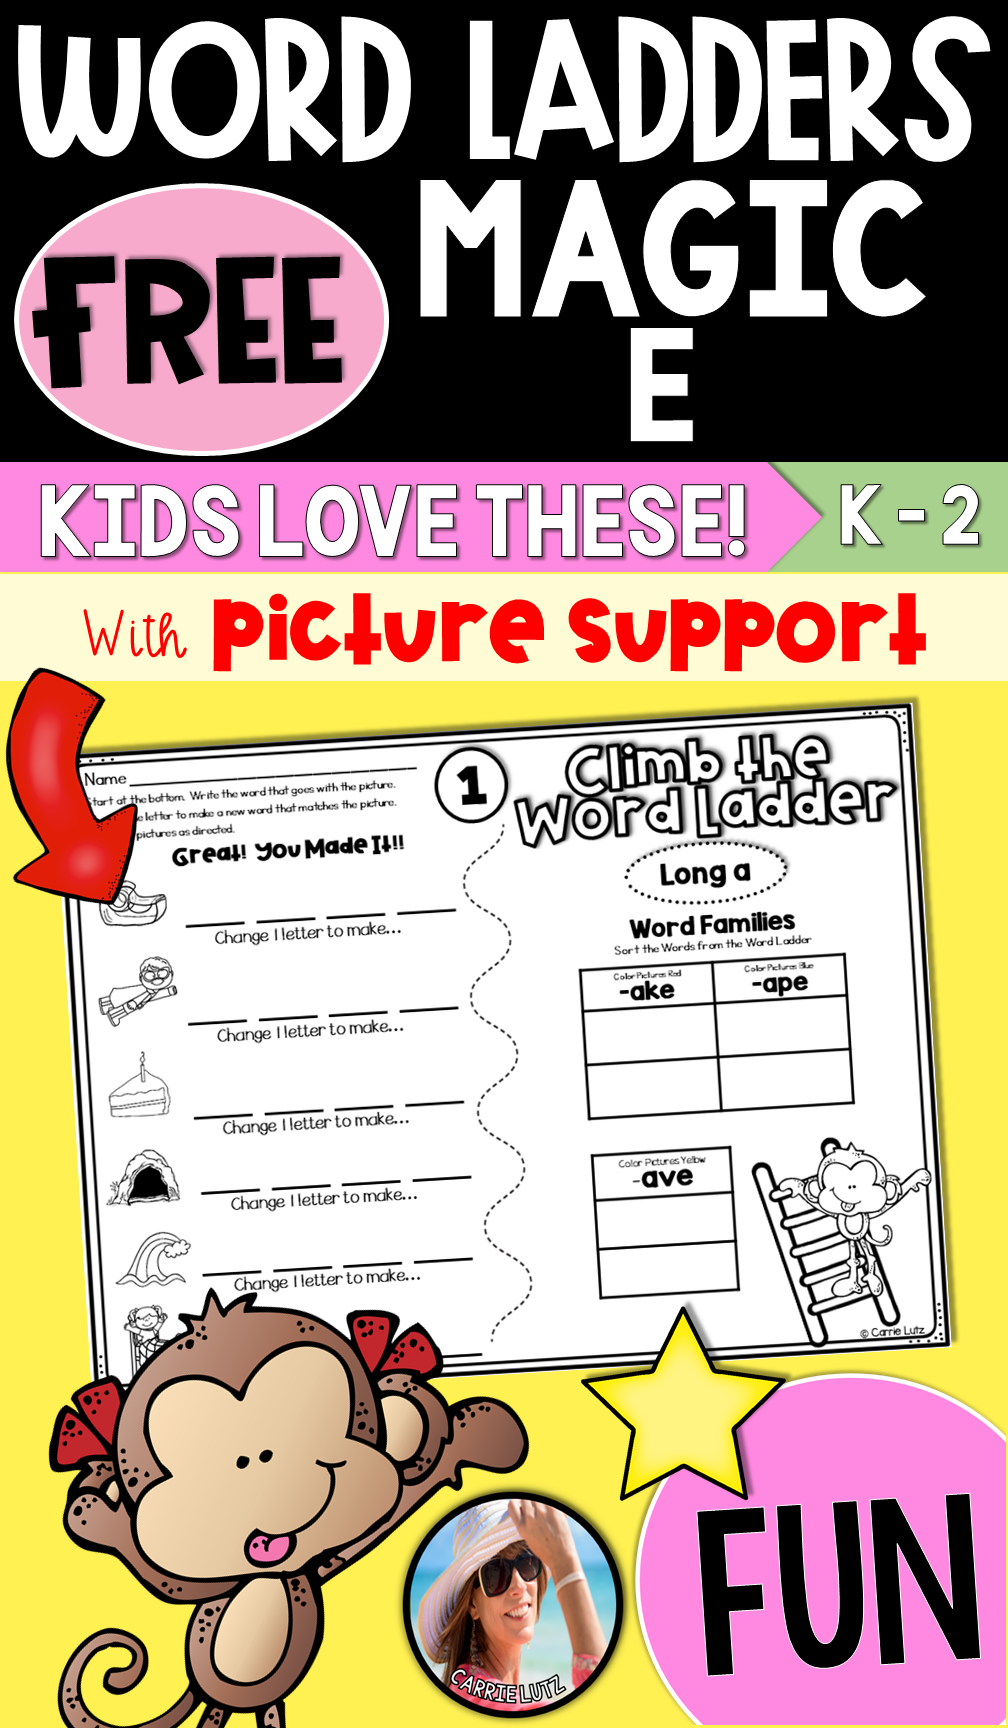 medium resolution of This Free Magic e Printable Worksheet / Activity makes learning FUN for  Kids in Kindergarten and First Grade. Ph…   Word ladders